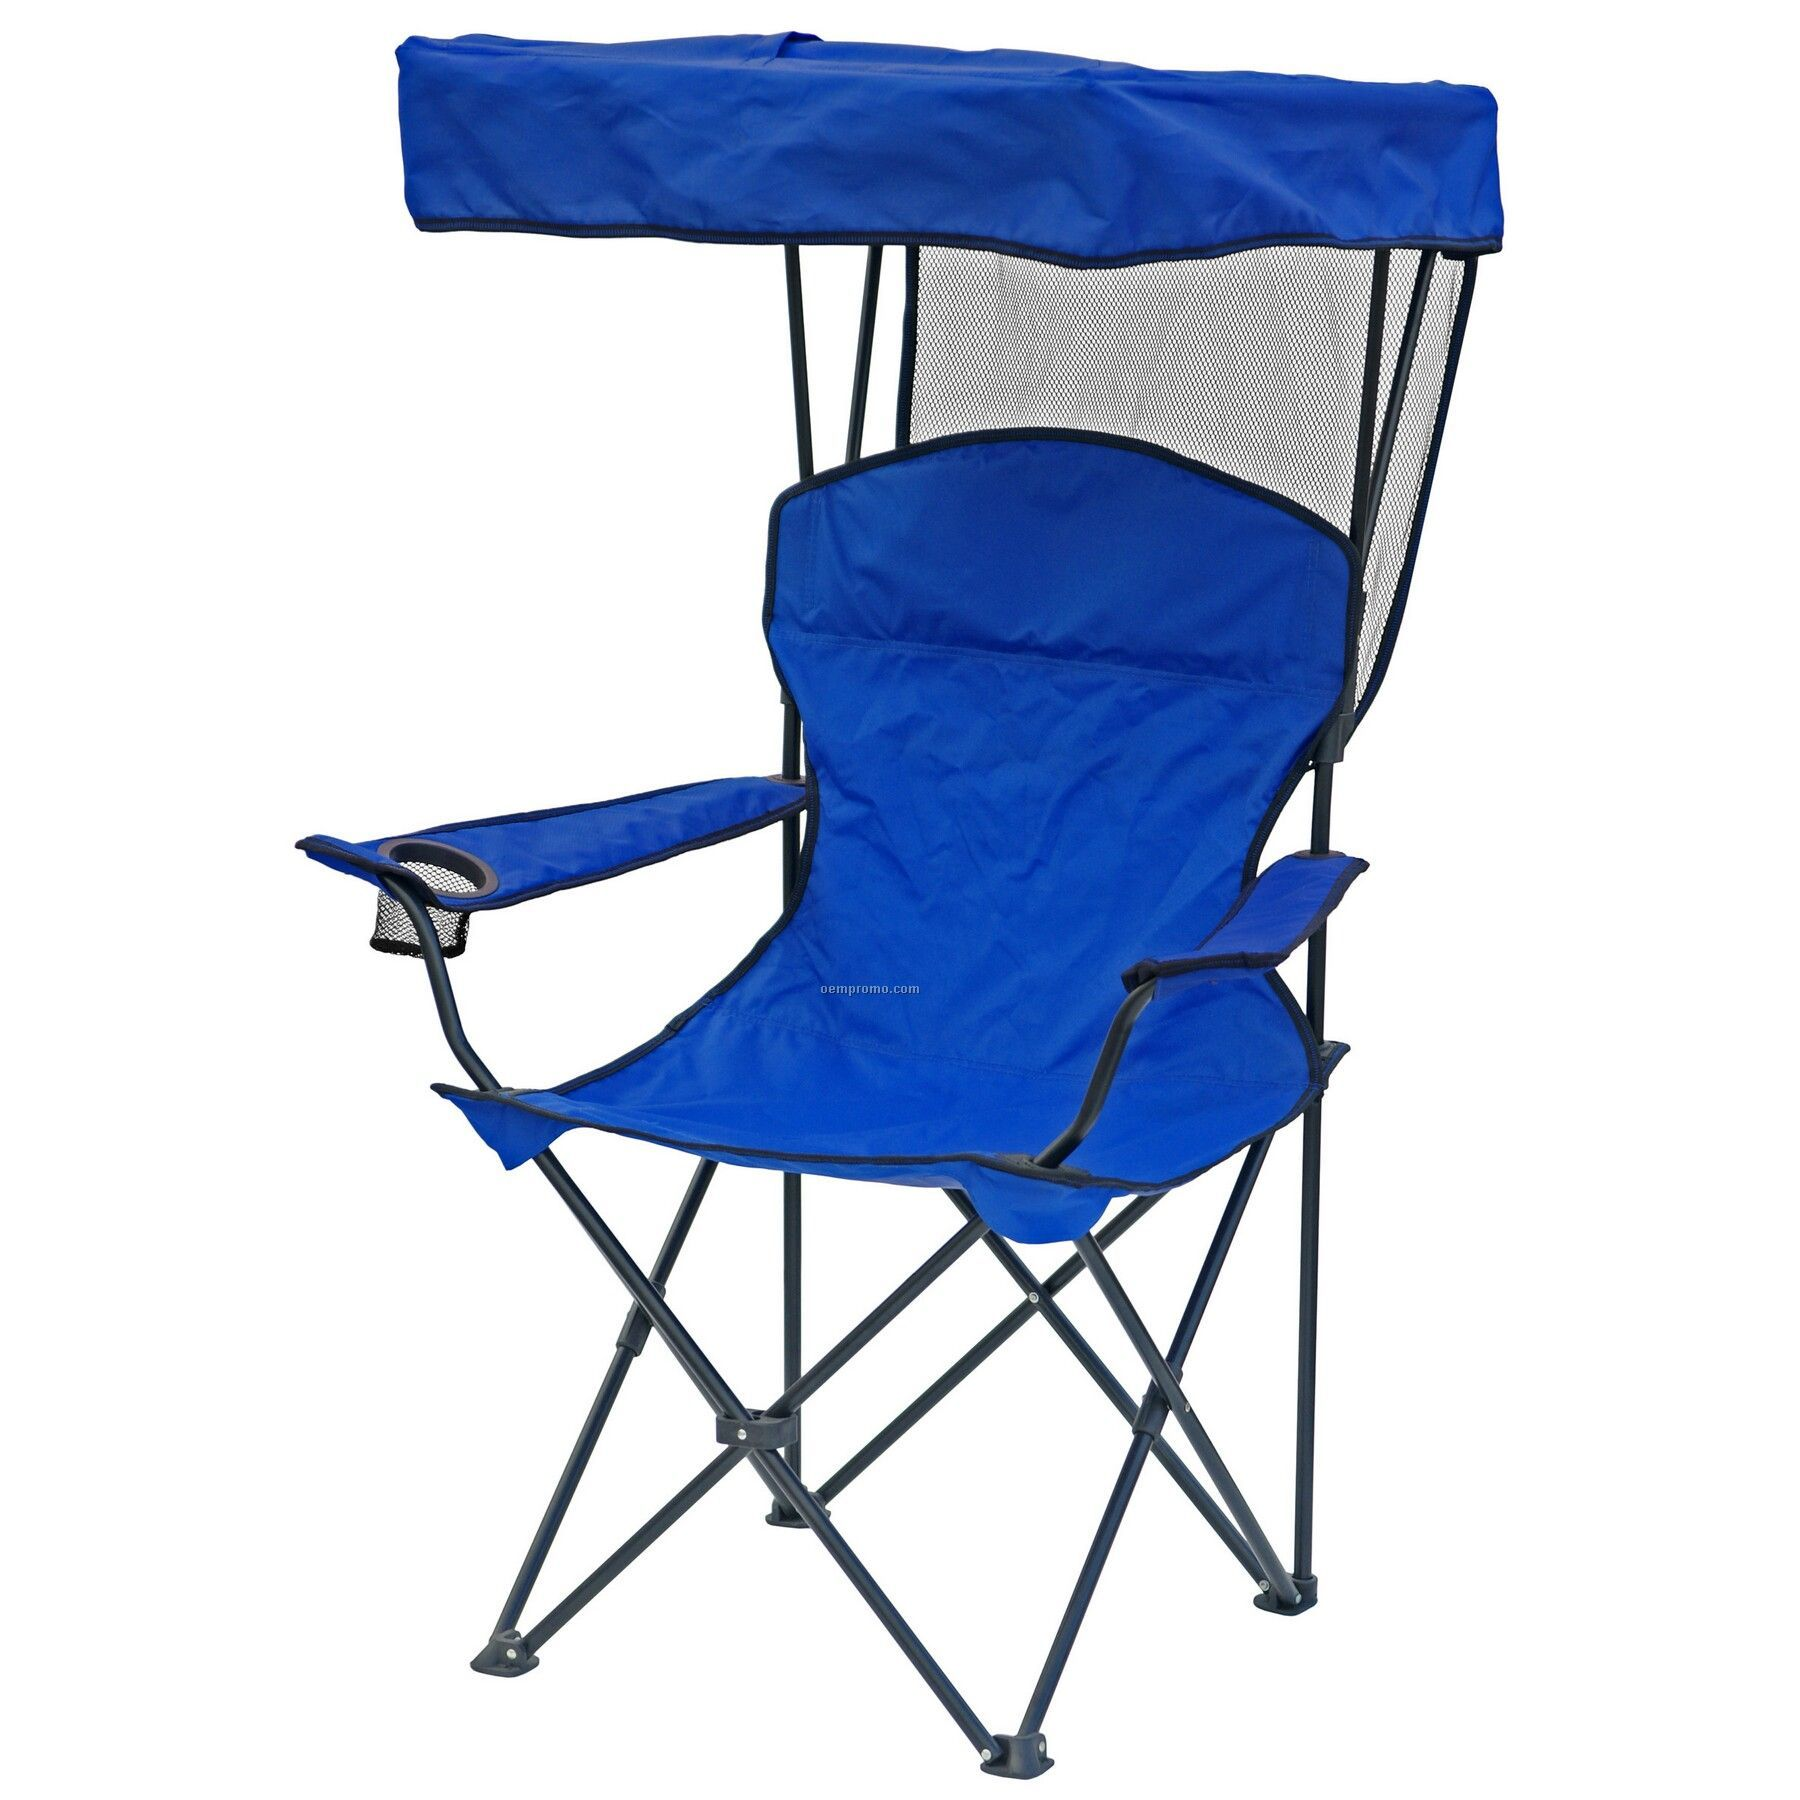 Folding Tent Chair Chairs China Wholesale Chairs Page 47  sc 1 st  Screensinthewild.org & folding tent chair - 28 images - sportsman guide 1 tent cot ...